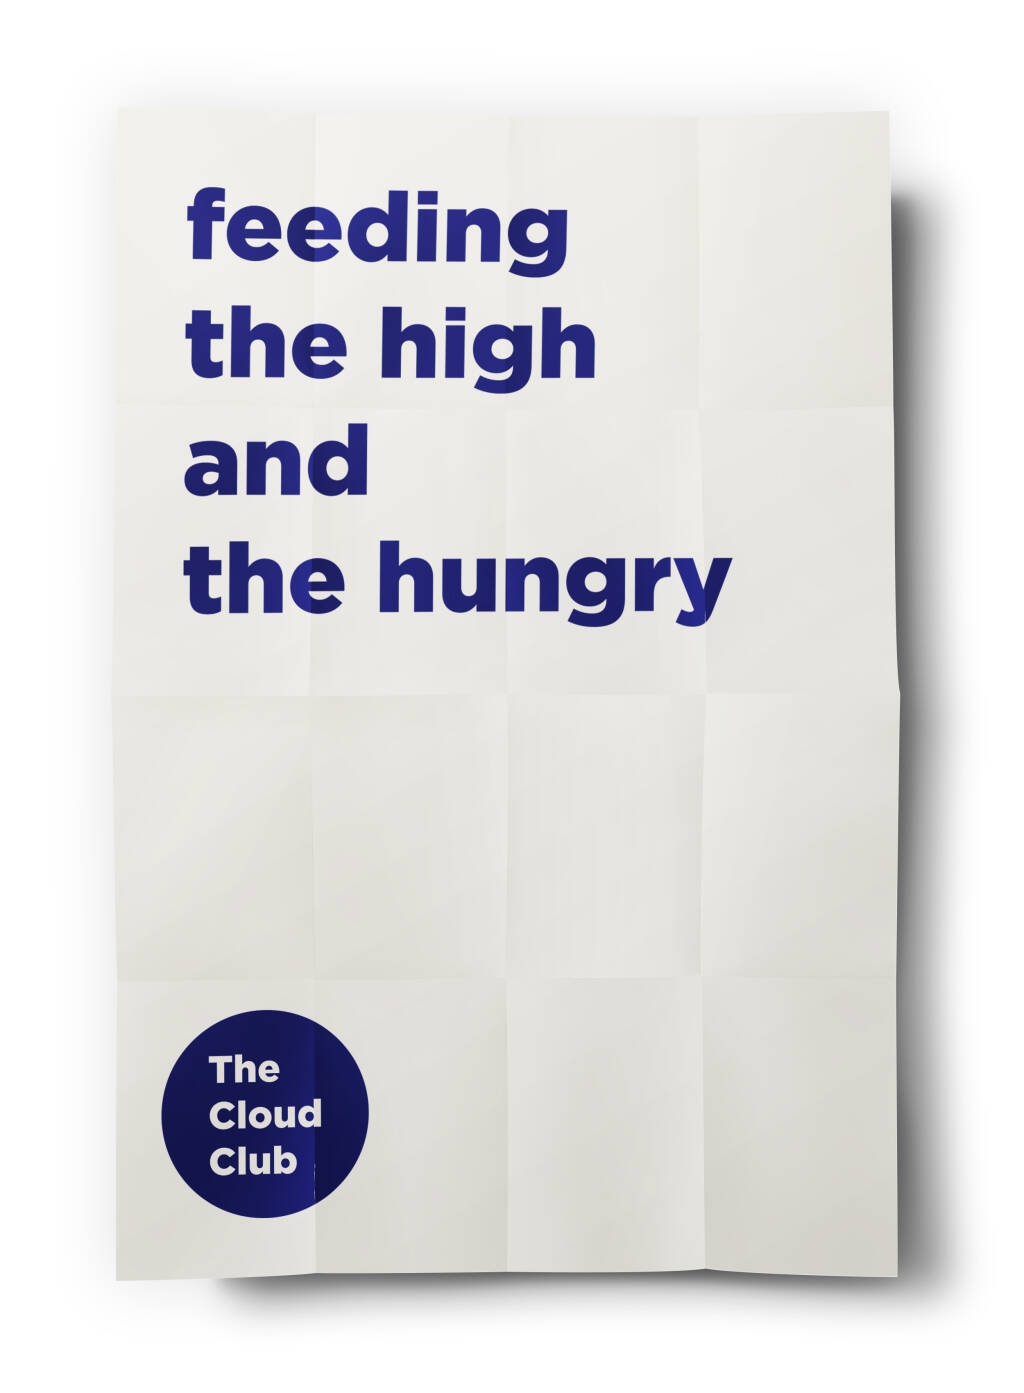 feed the high and the hungry